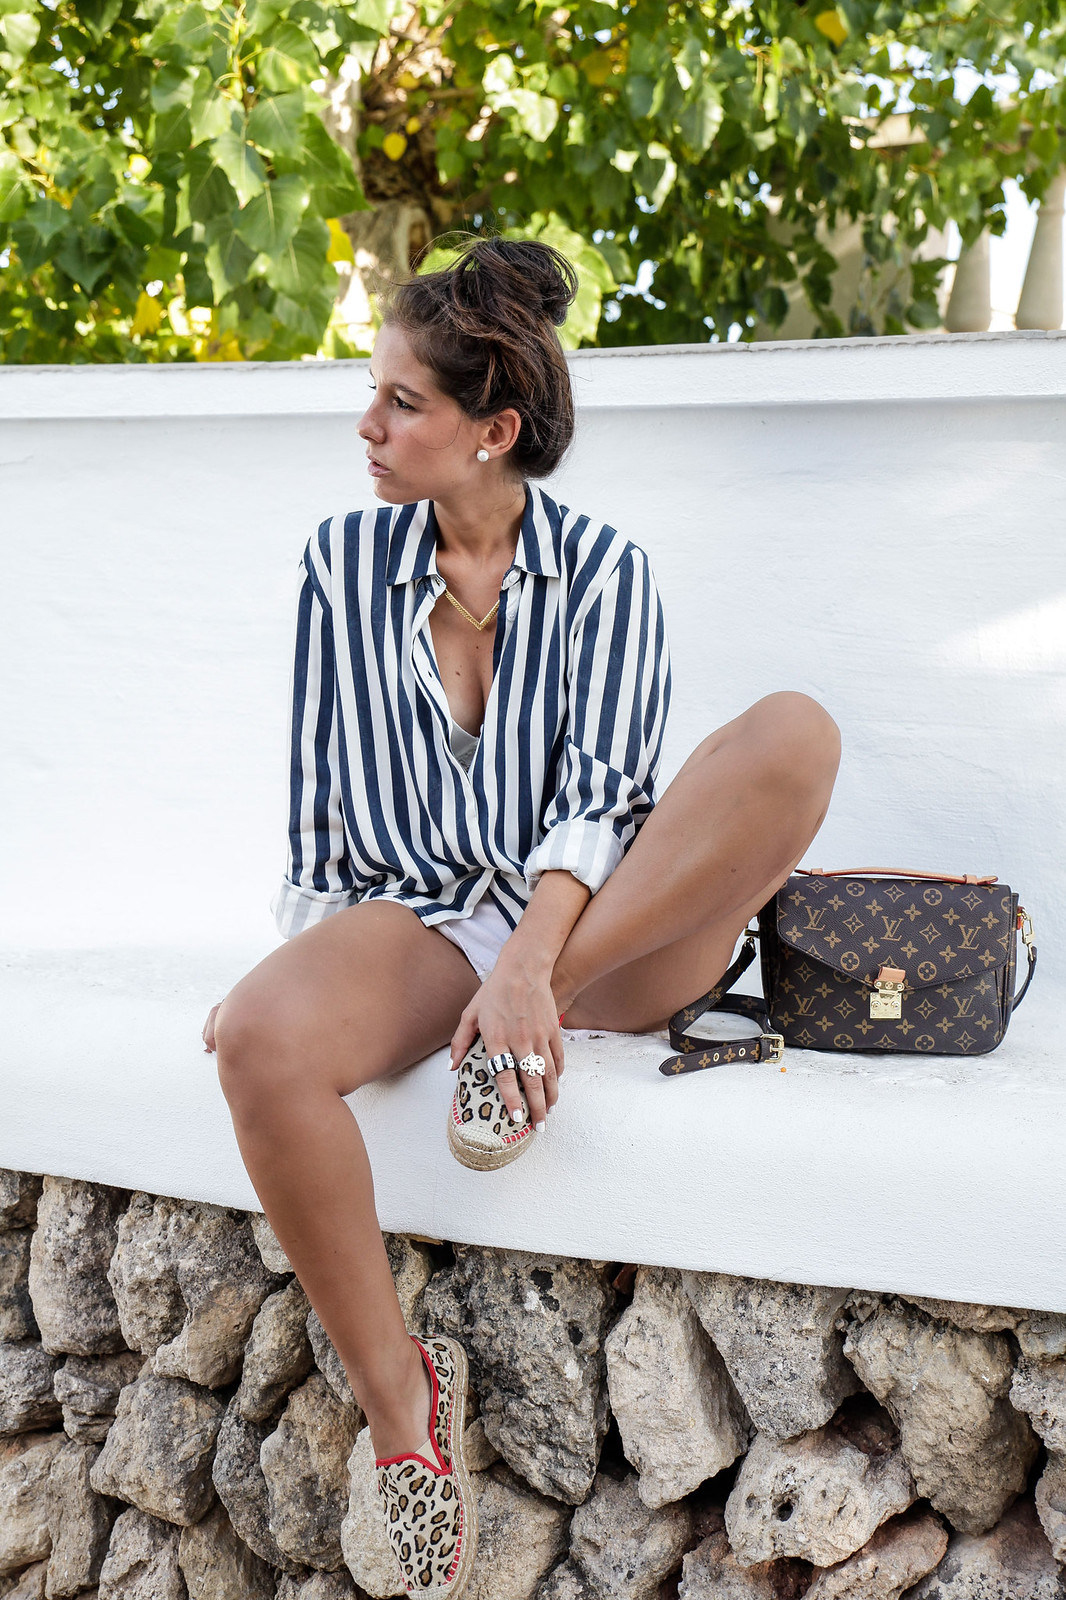 01_Leopard_and_stripes_perfec_mix_print_outfit_THEGUESTGIRL